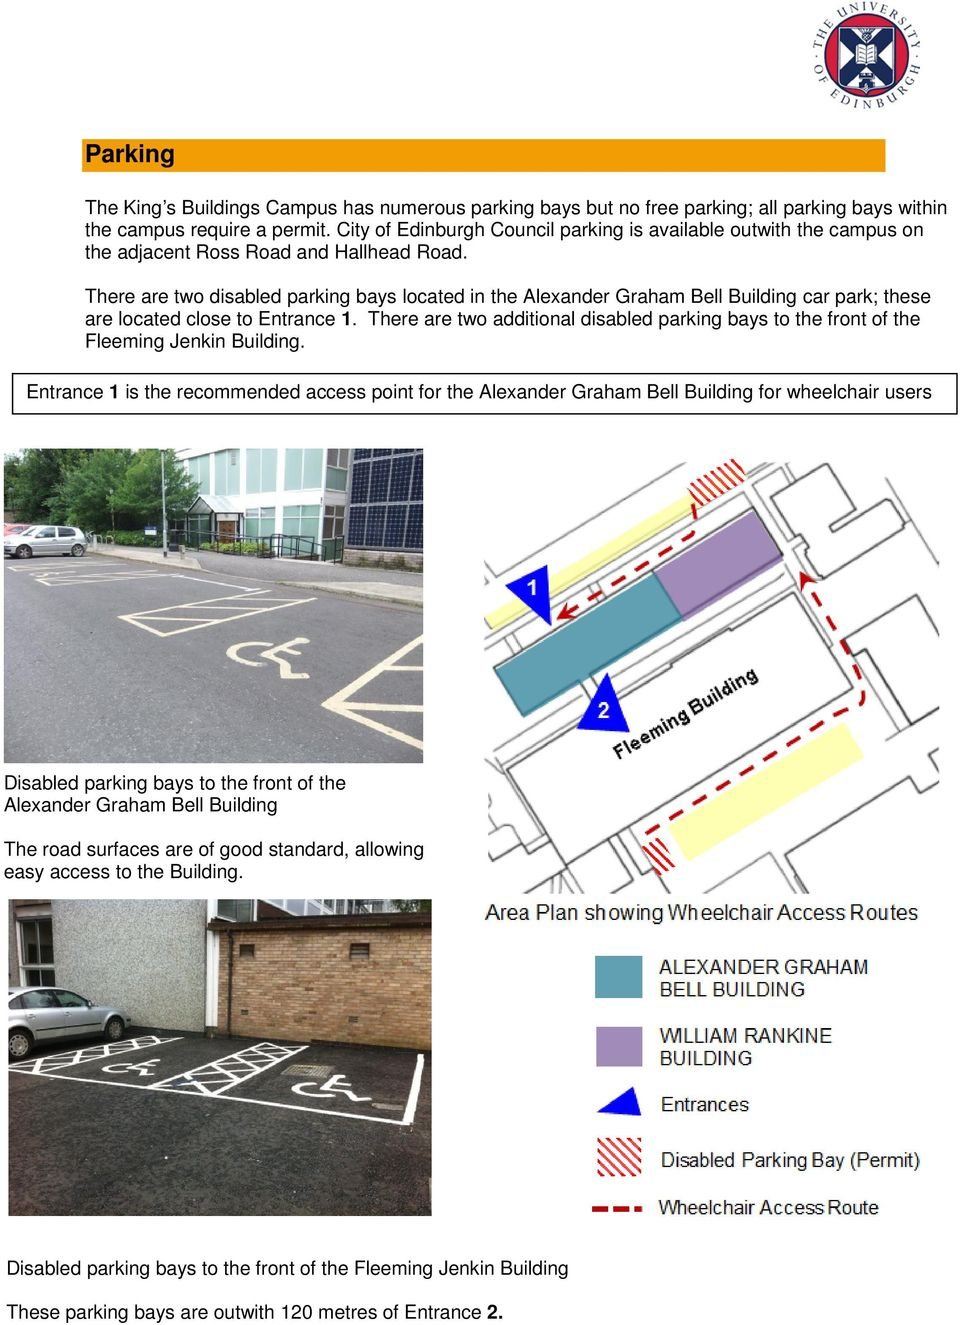 There are two disabled parking bays located in the Alexander Graham Bell Building car park; these are located close to Entrance 1.